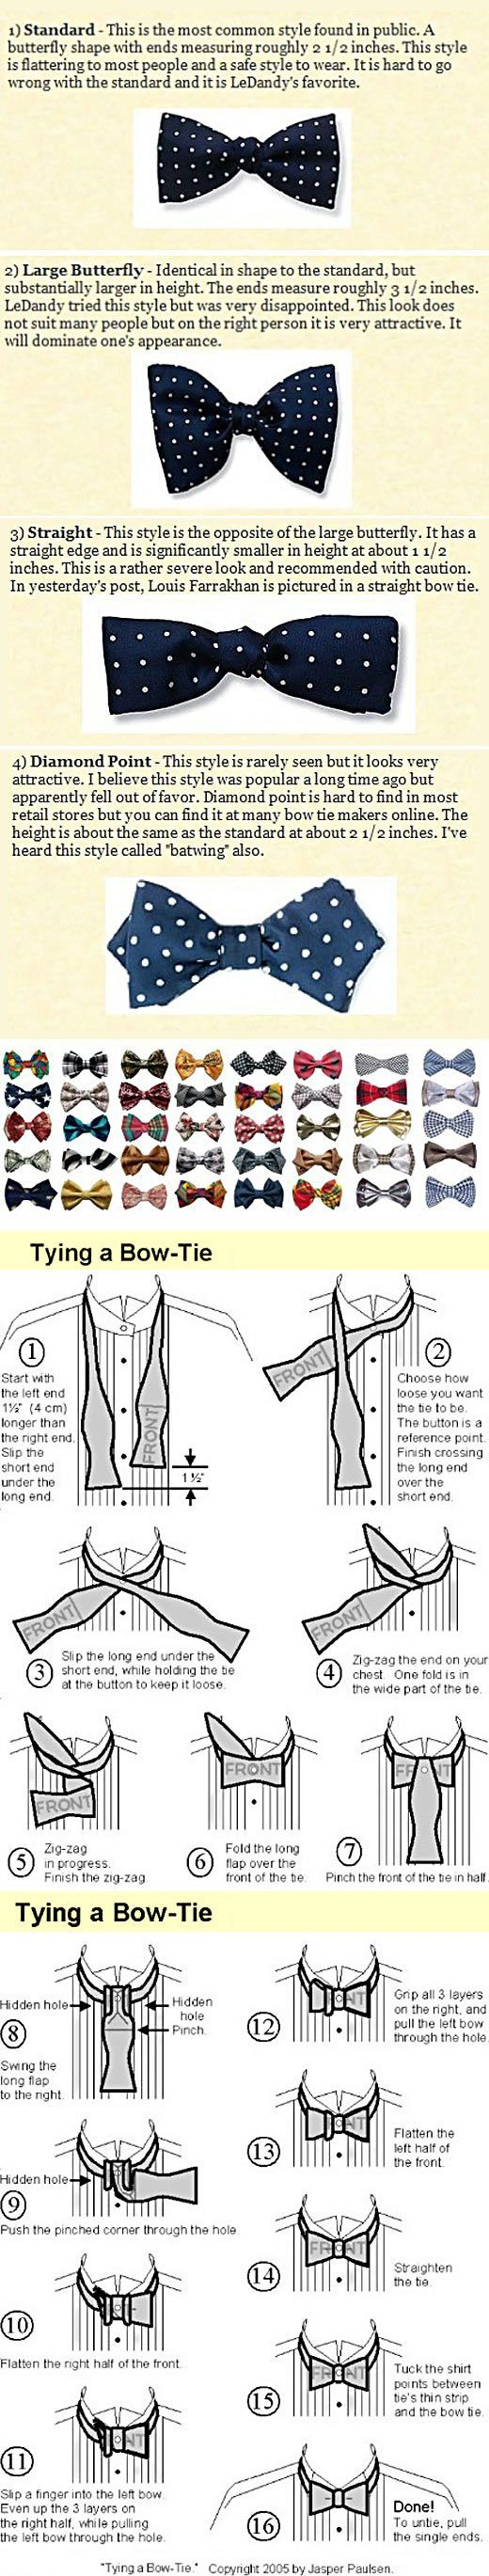 Everything you need to know about the bow-tie. I'm pinning this just for the fun of knowing how to tie a bow-tie.